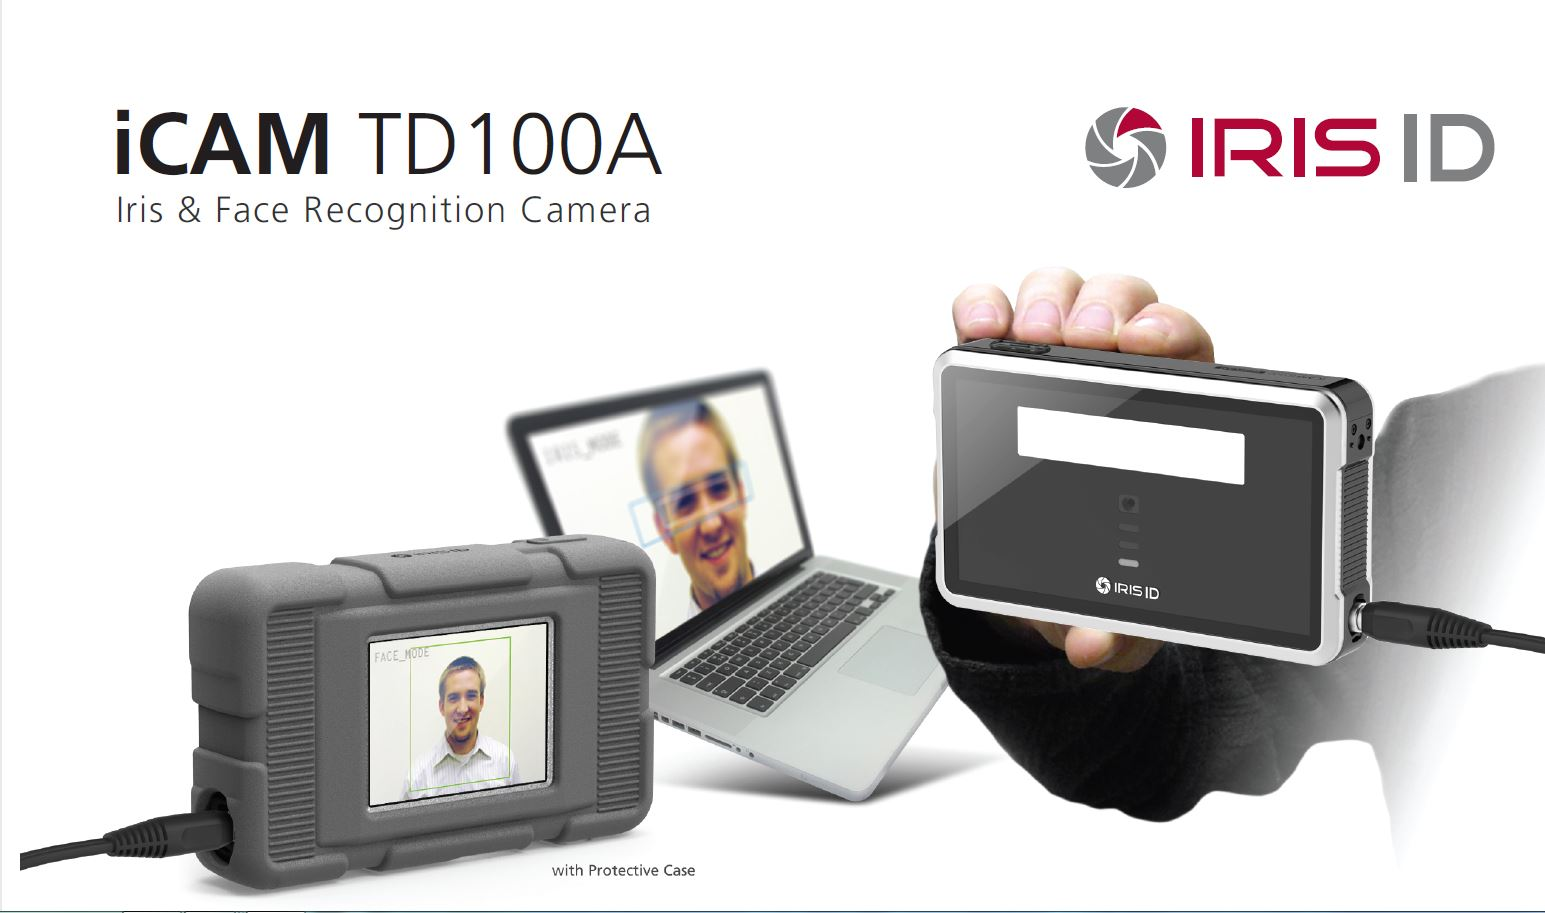 Iris ID Products & Solutions